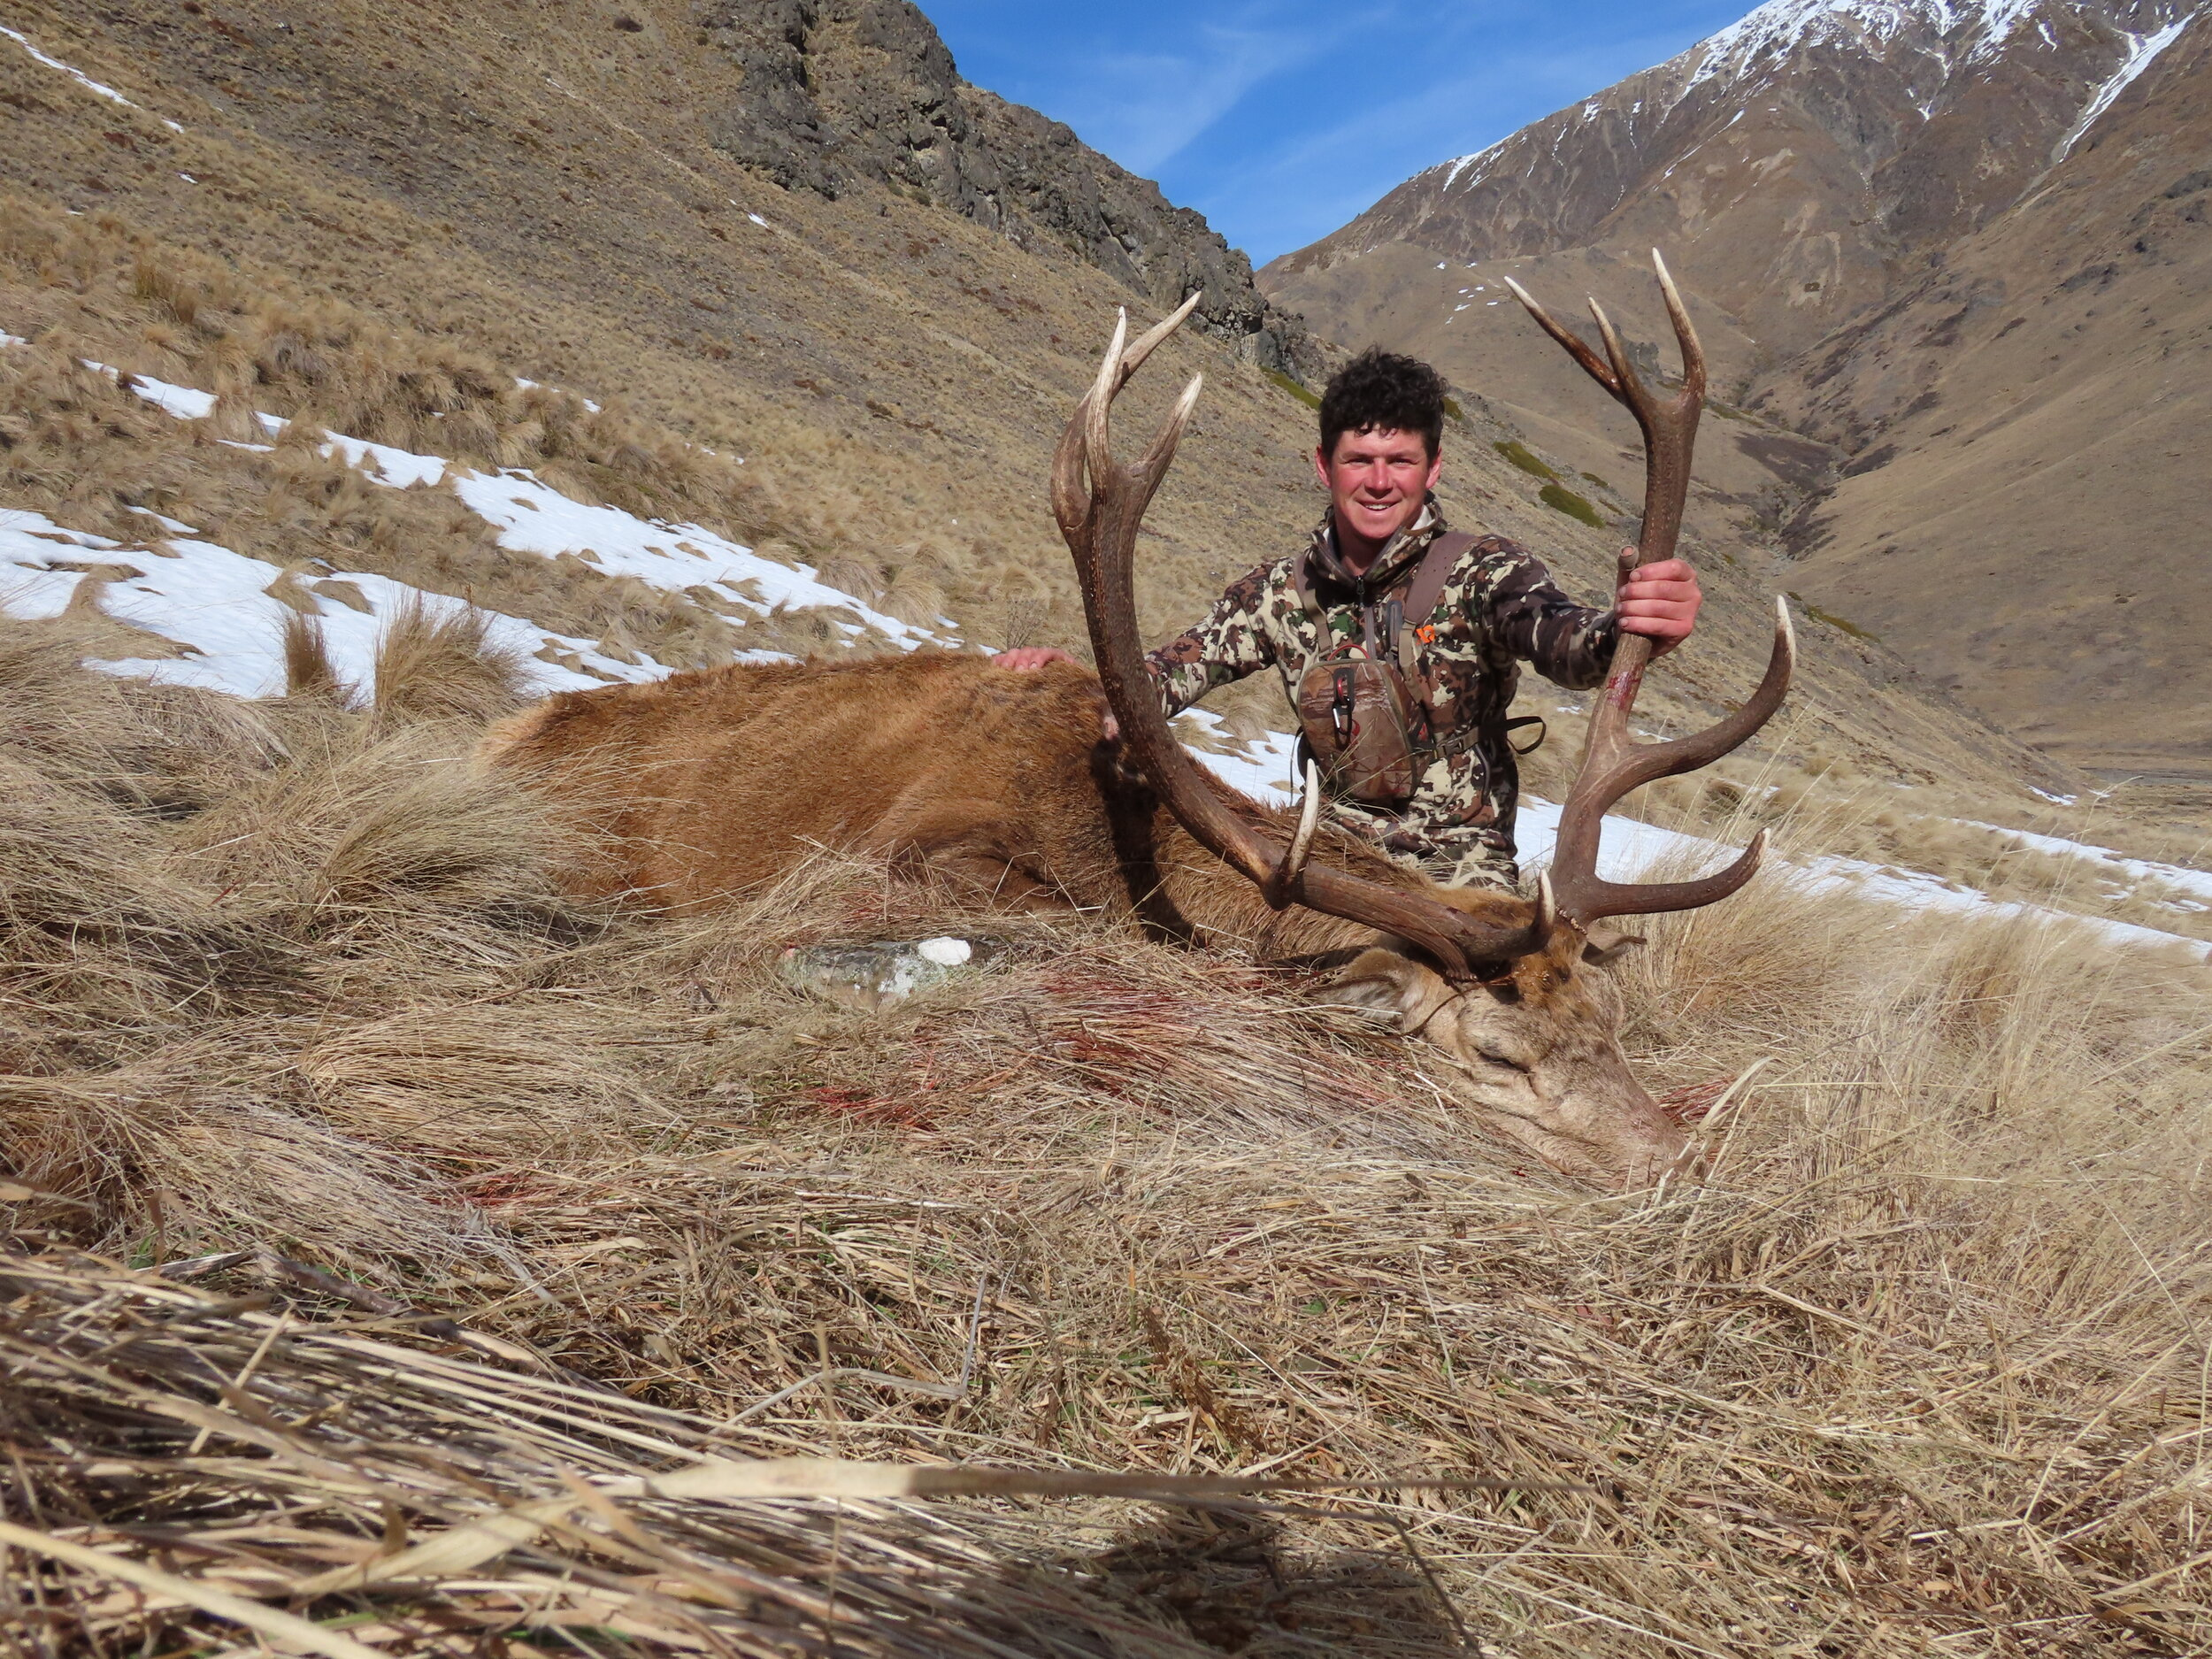 big wild redstag and first lite clothing